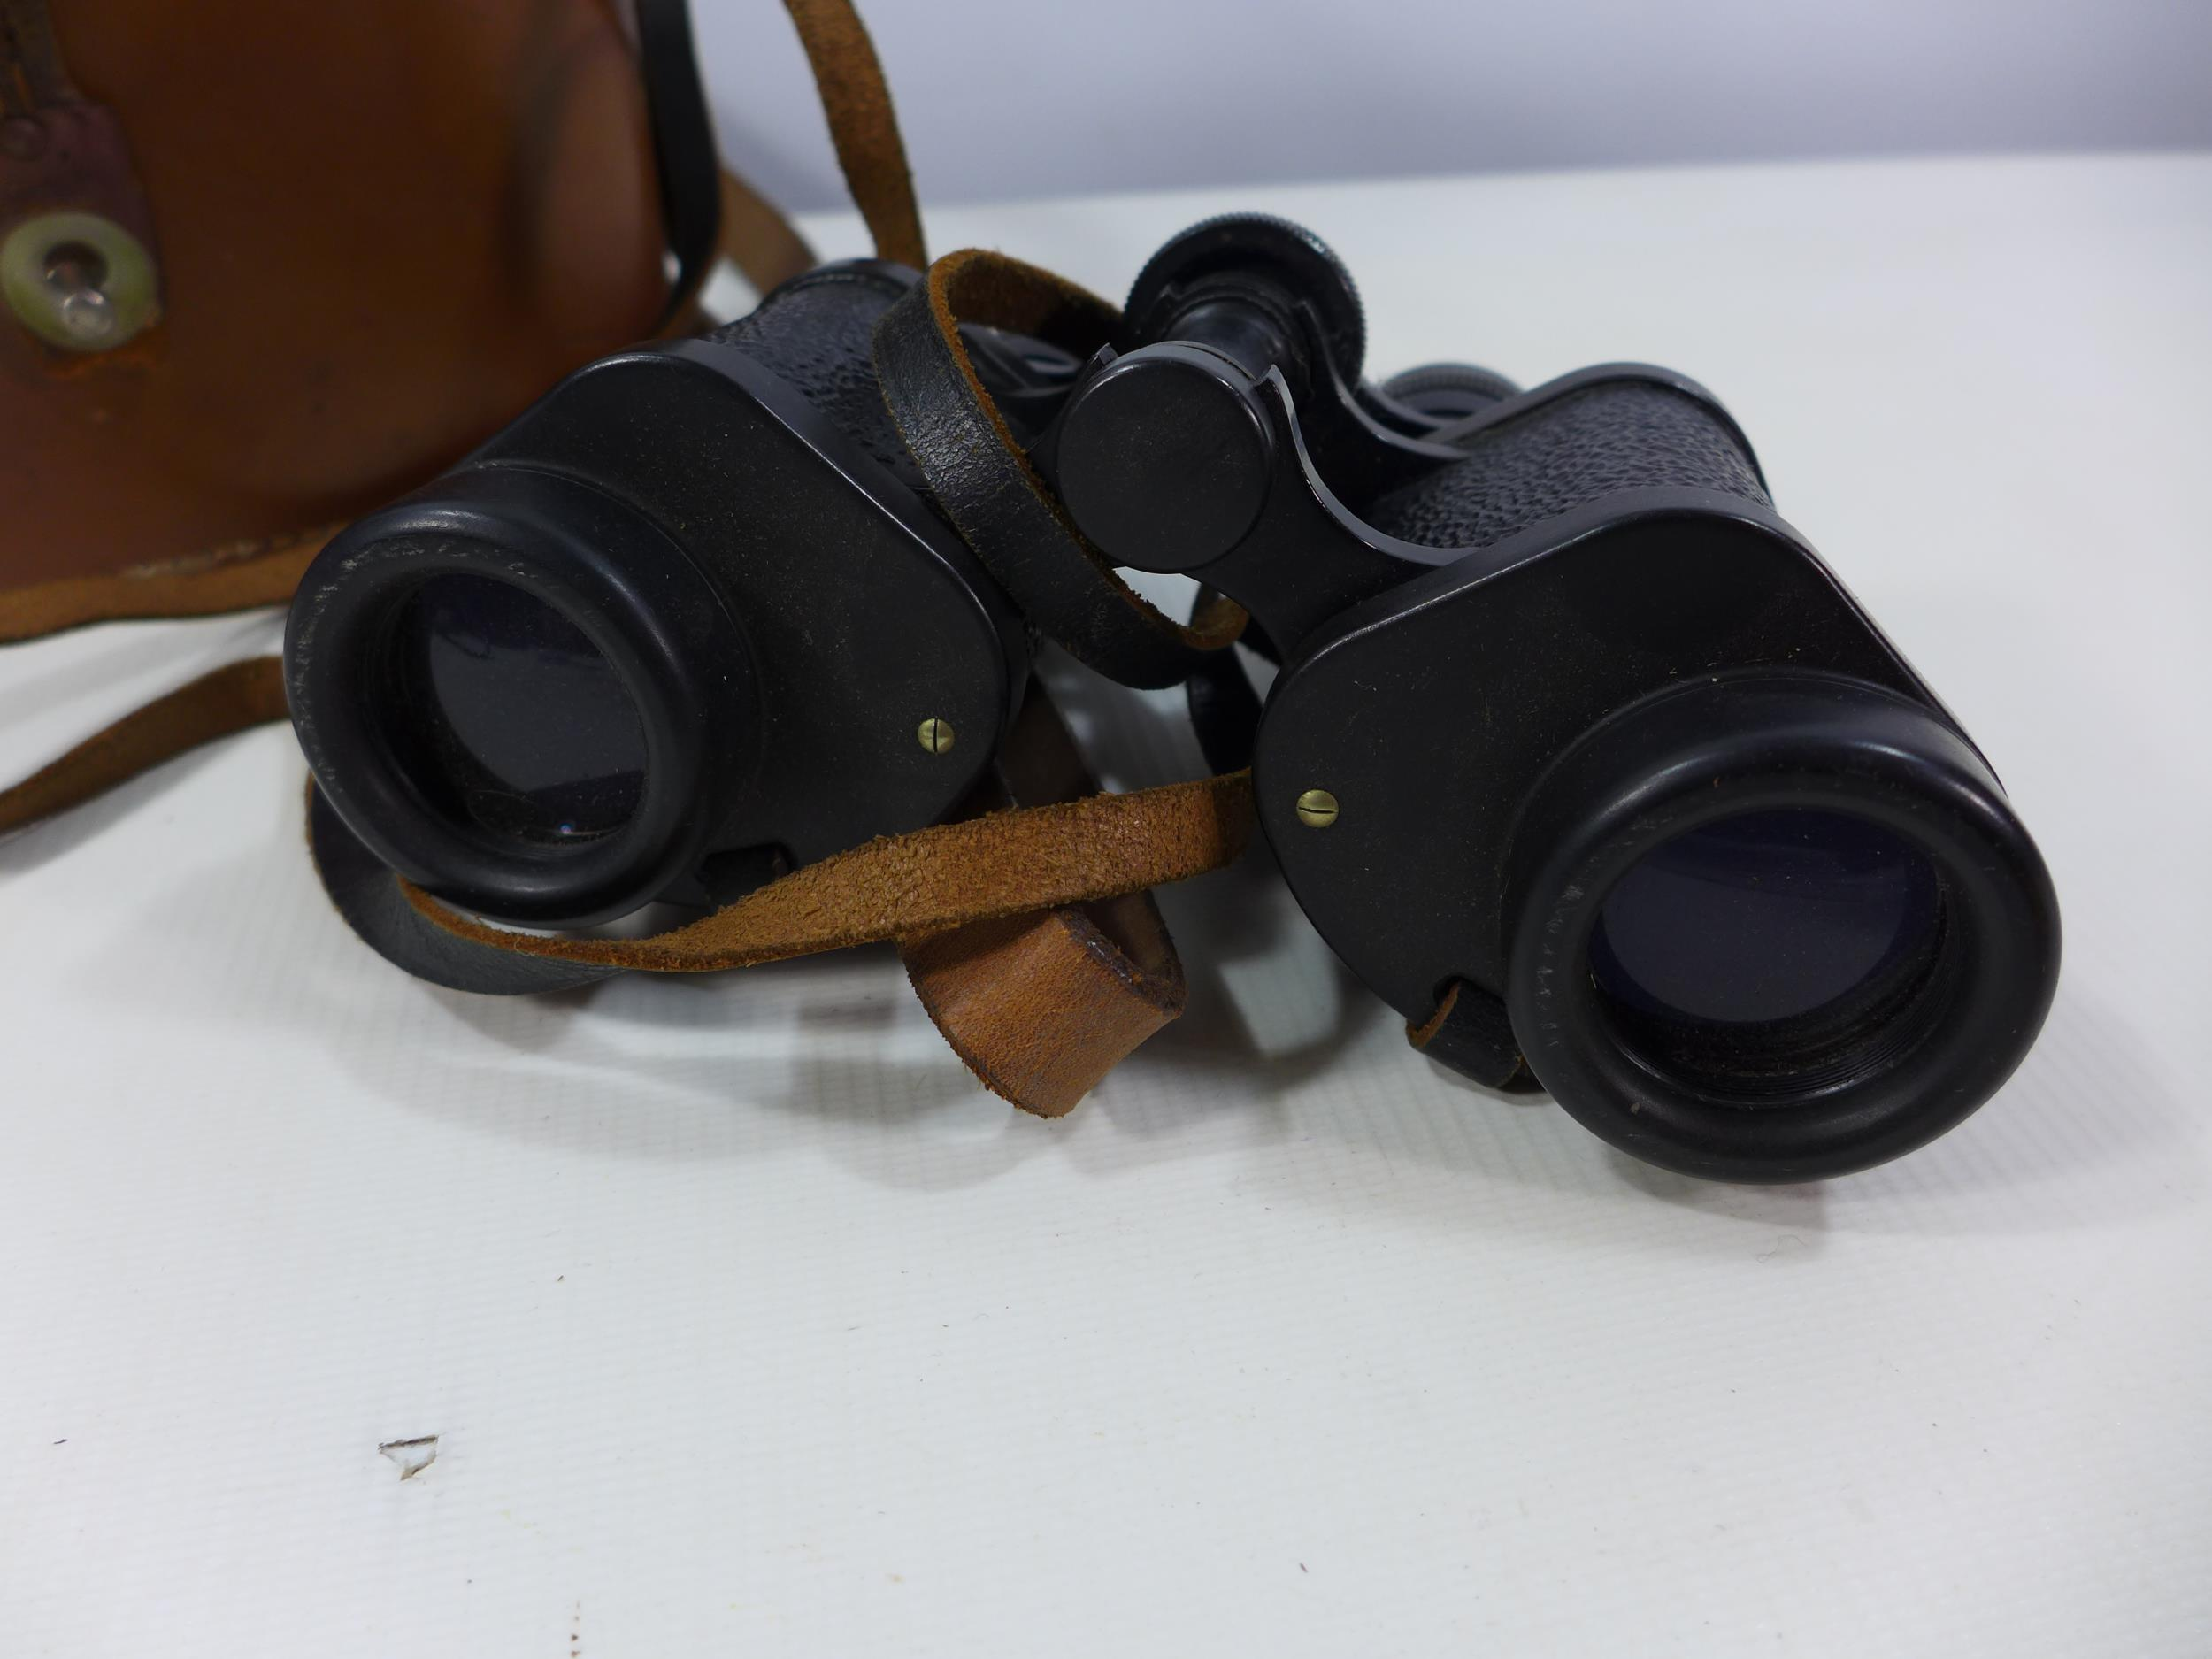 A PAIR OF BARR AND STROUD C.F.24 8X30 BINOCULARS AND LEATHER CASE - Image 3 of 4